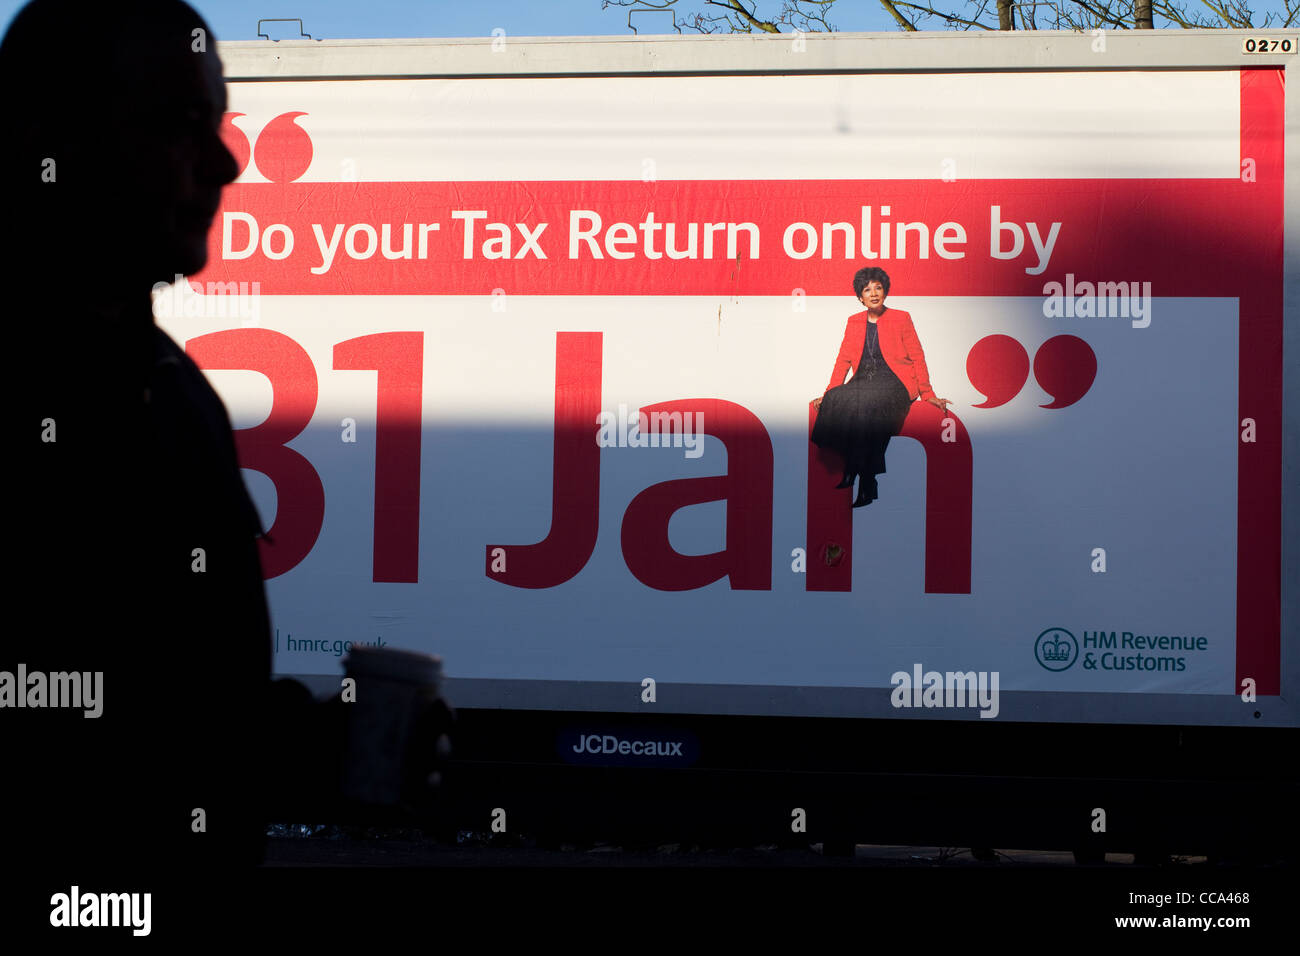 do-your-tax-return-online-by-31-jan-post